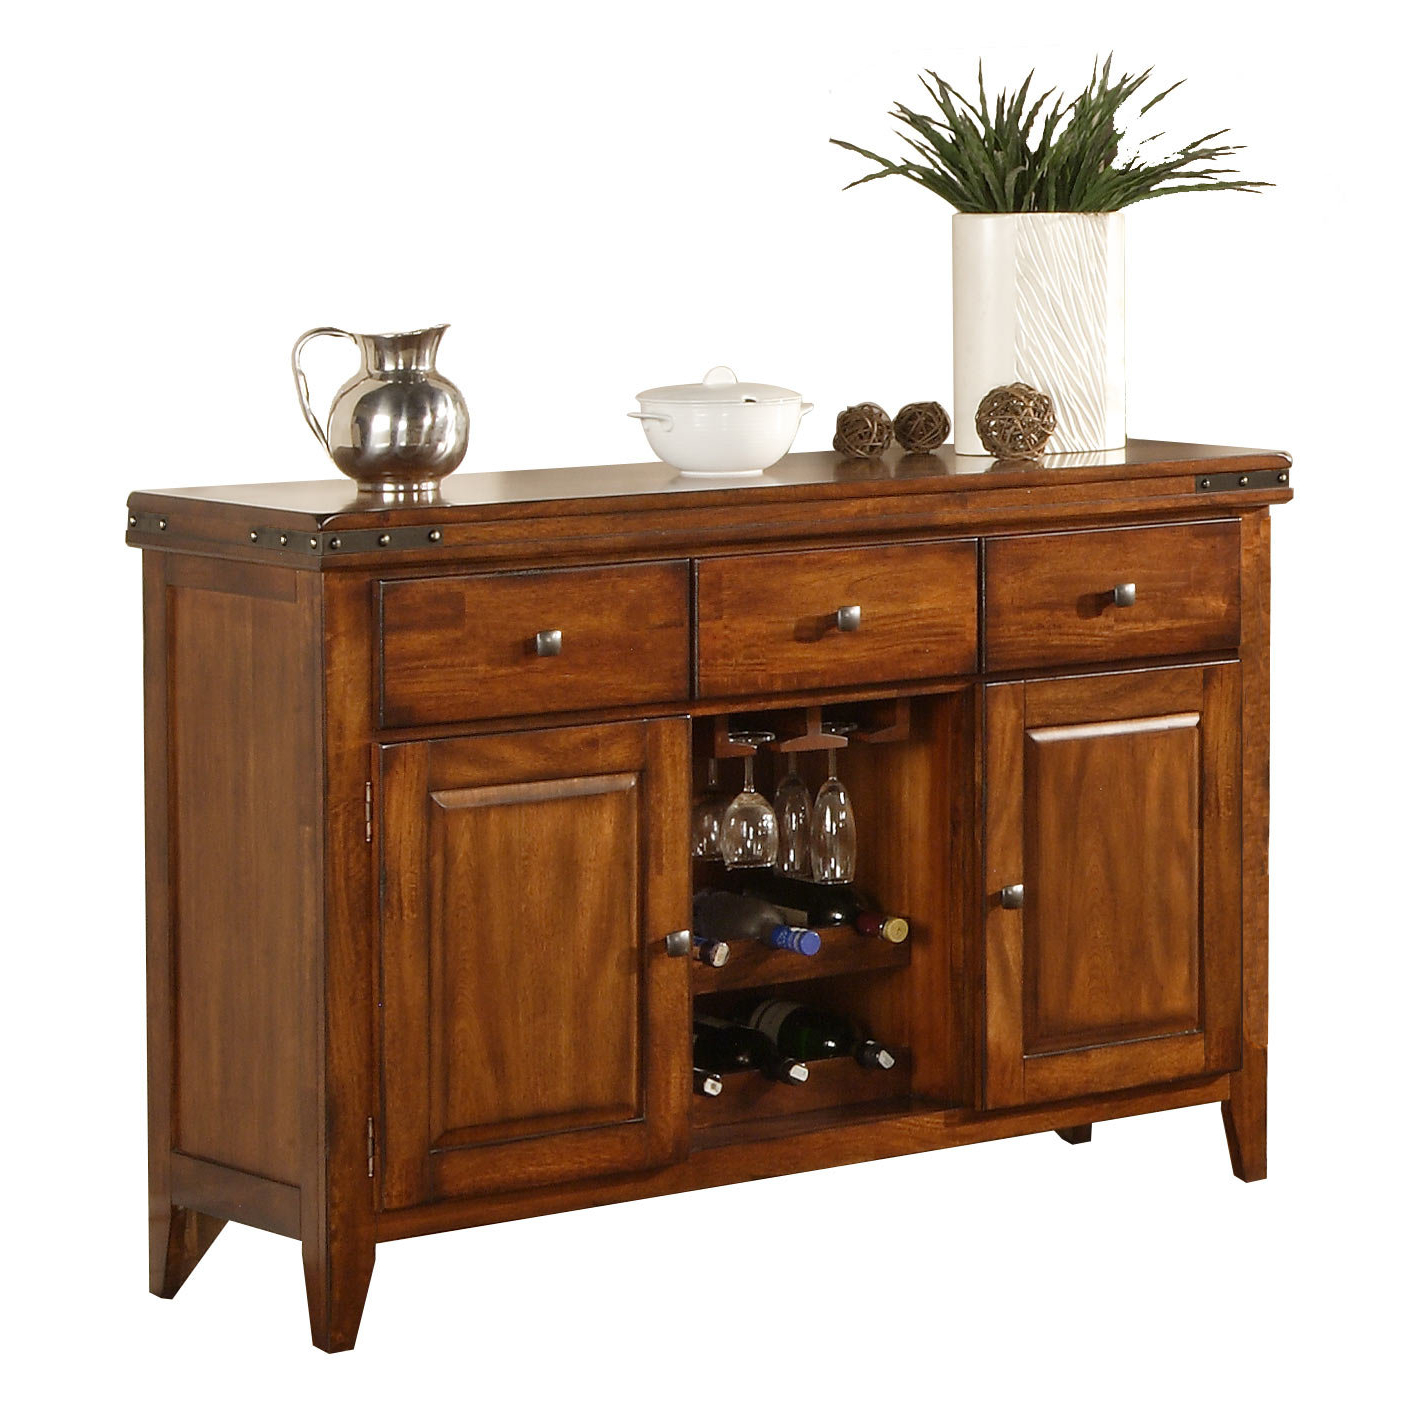 Famous Nashoba Sideboards Intended For Farmhouse & Rustic Loon Peak Sideboards & Buffets (View 10 of 20)